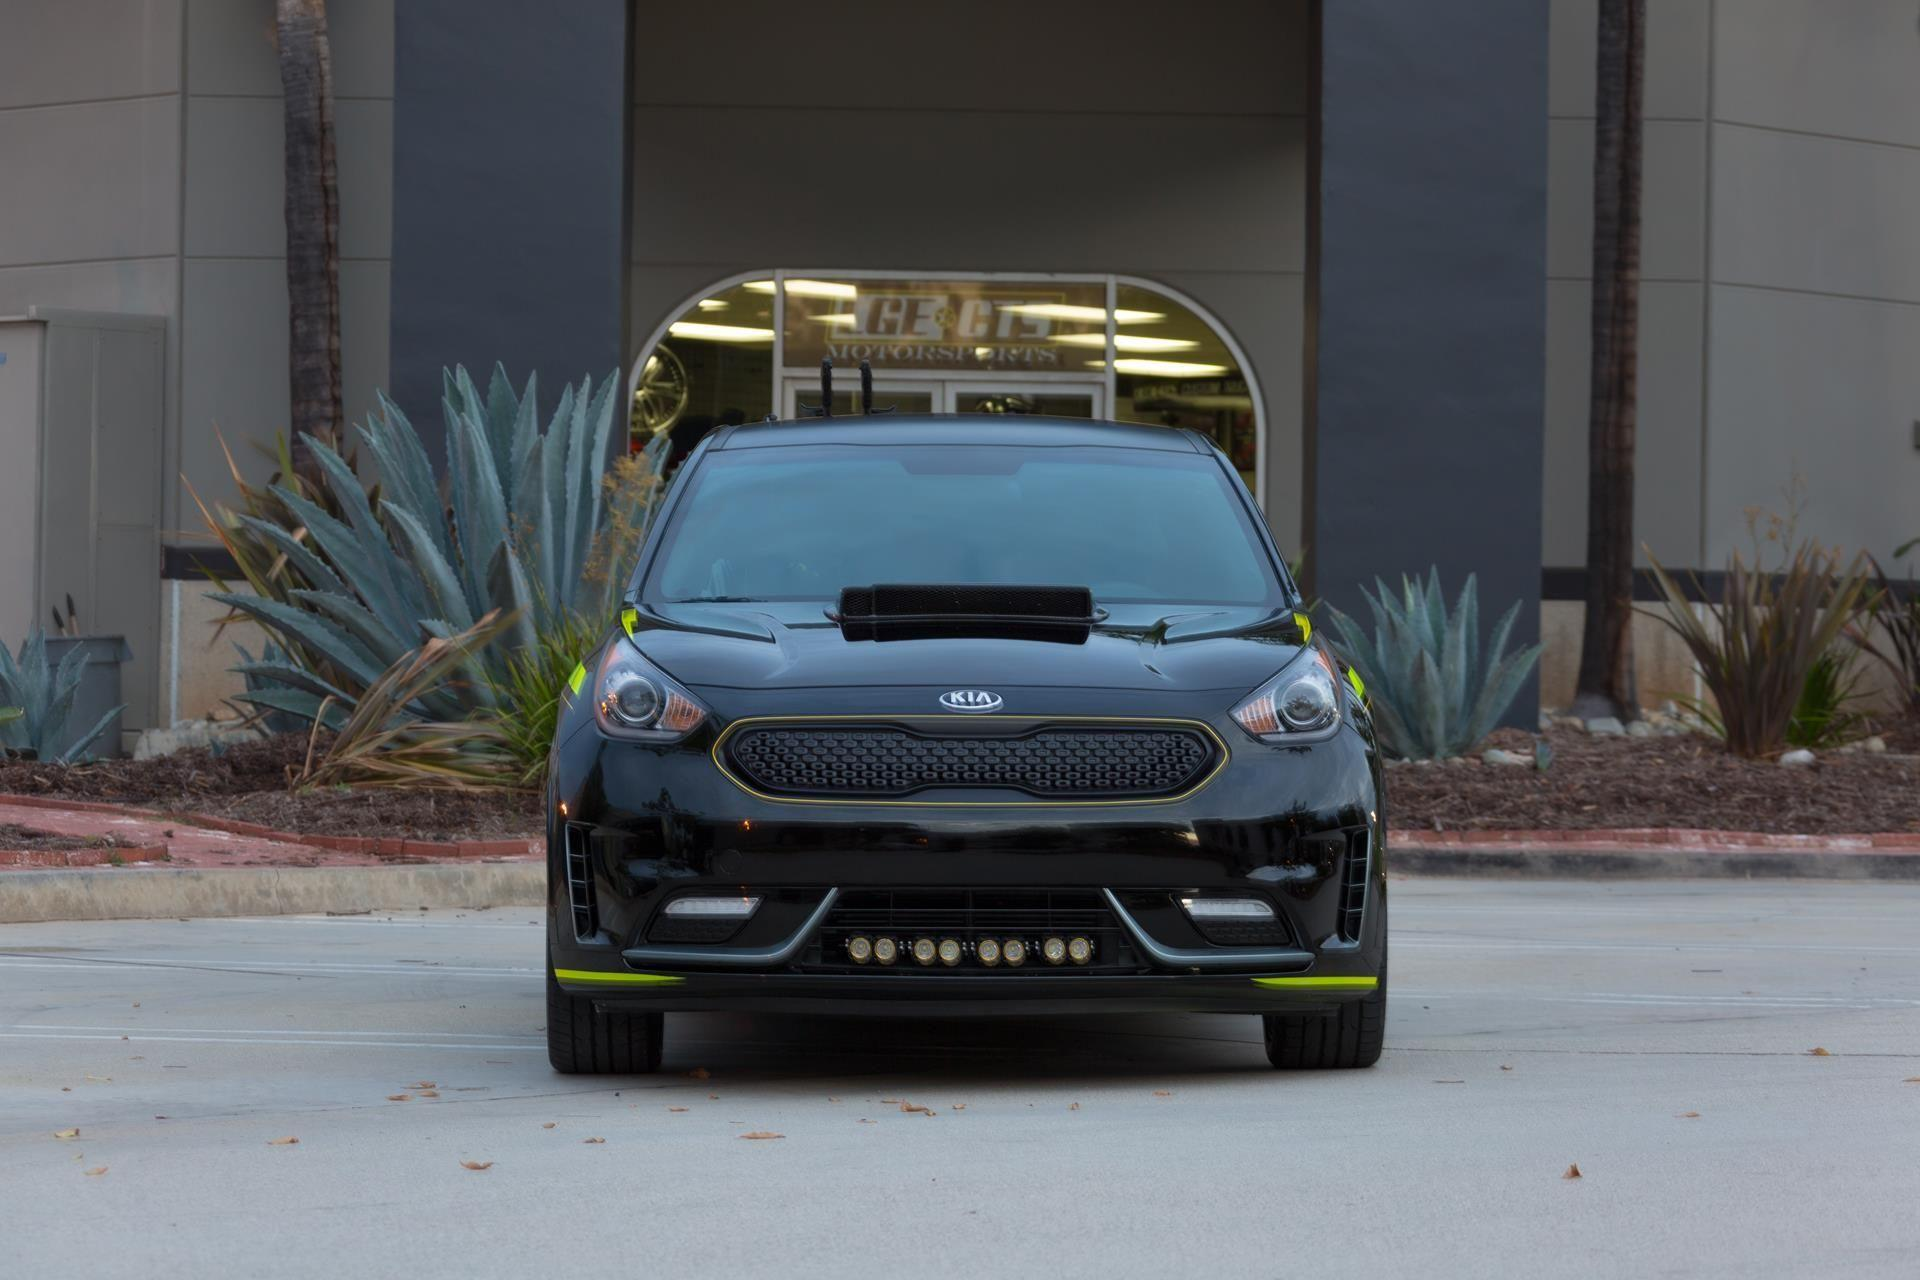 2016 Kia Niro Triathlon News and Information, Research, and History